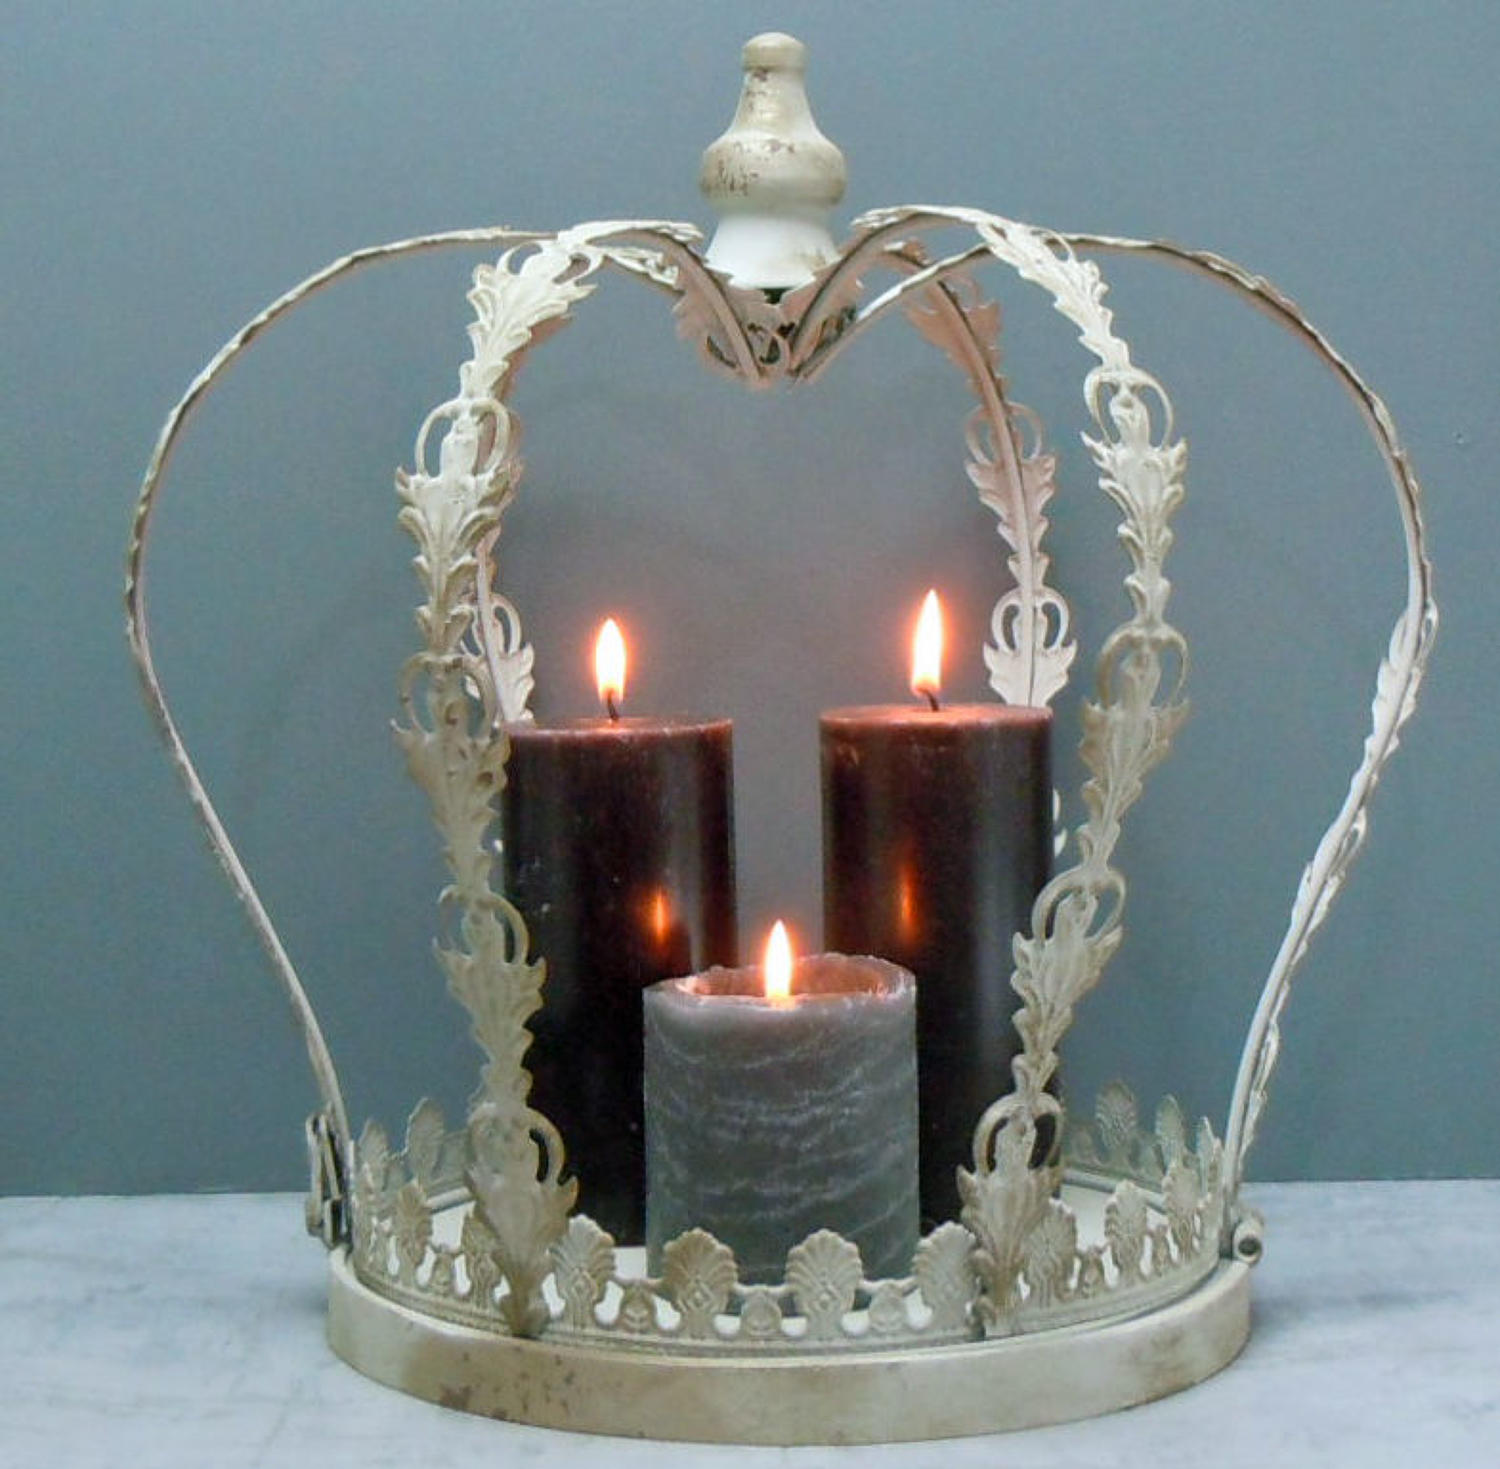 Distressed cream metal Crown candle holder